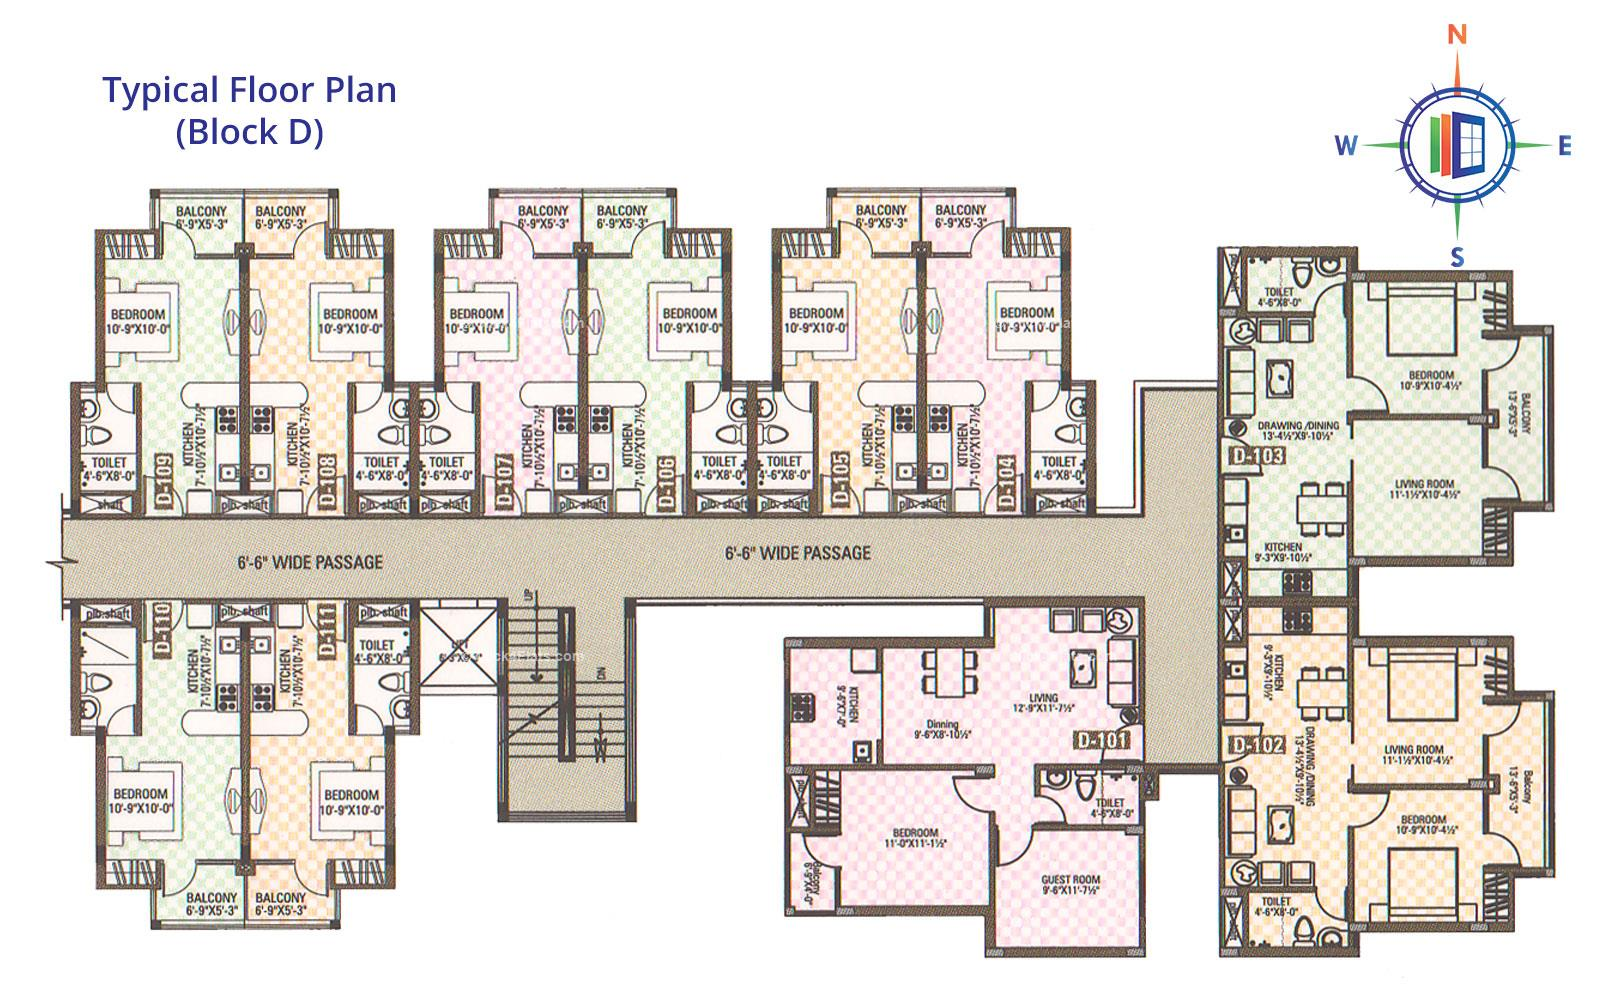 Celebrations Typical Floor Plan (D)